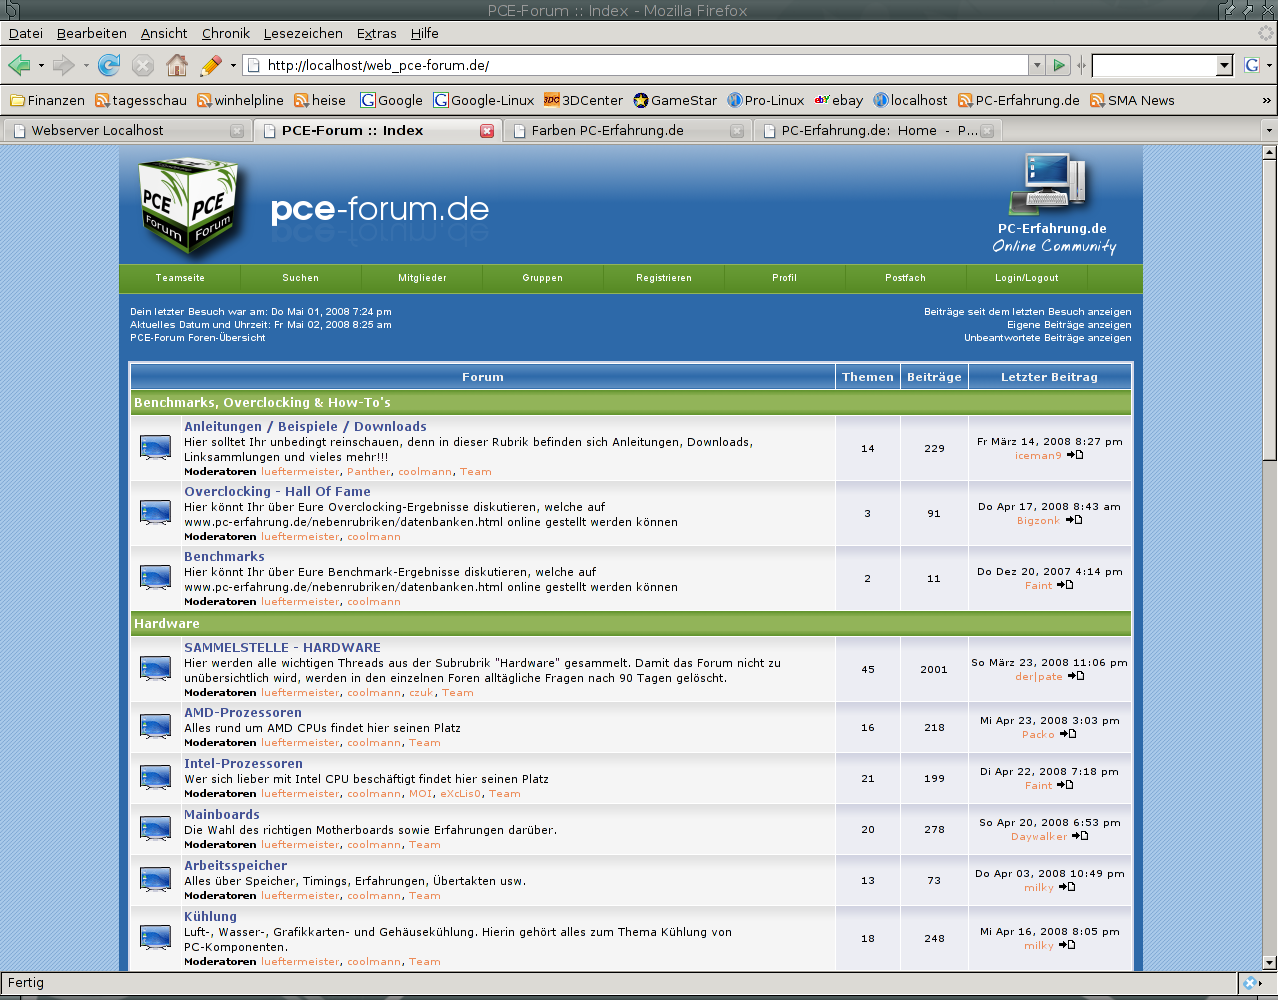 pce-forum-design-2008-05-02.png